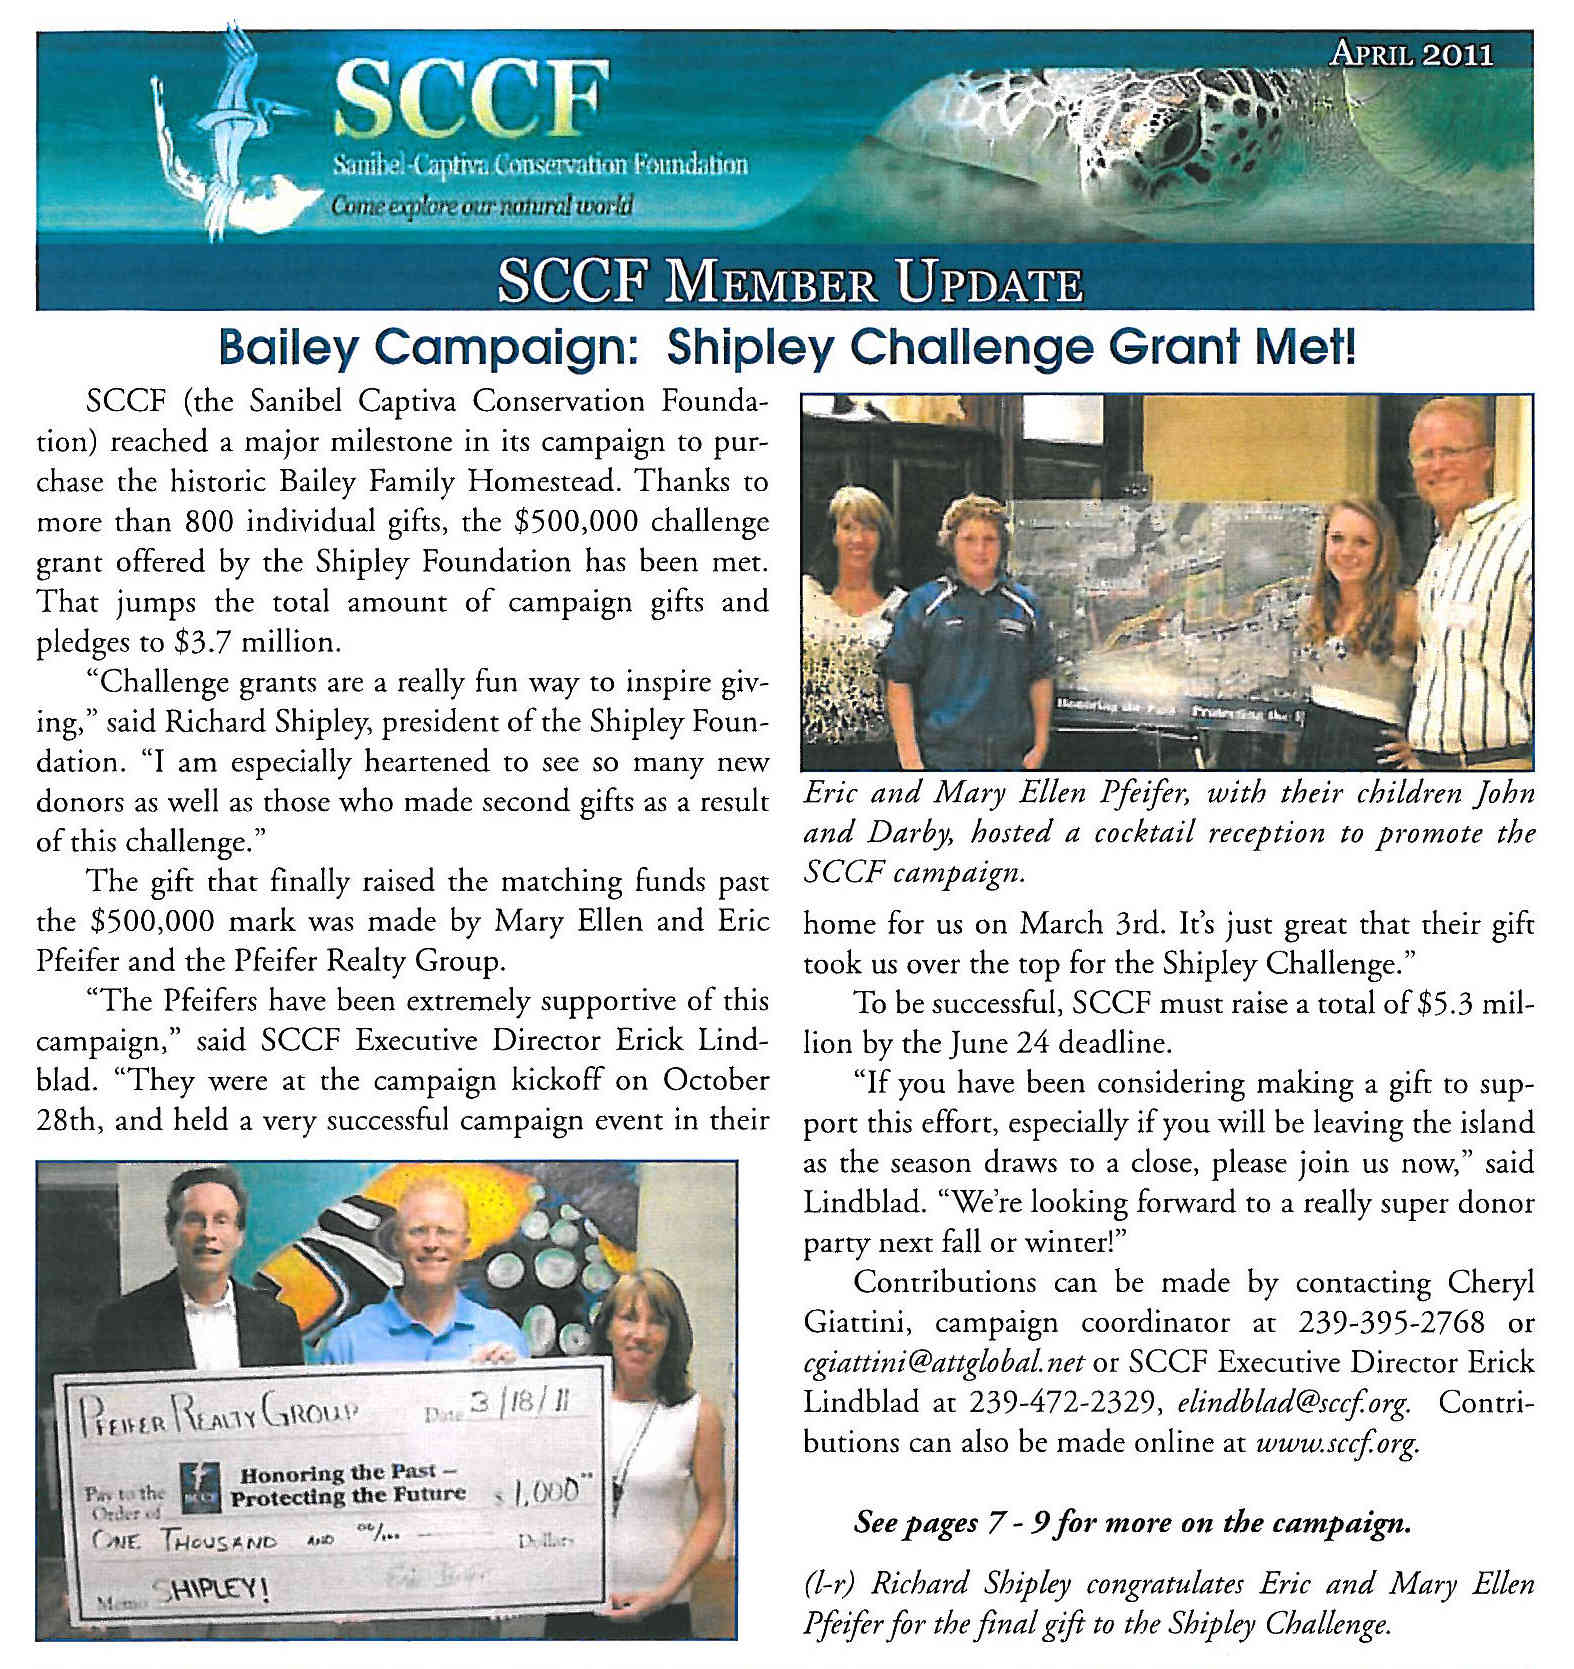 SCCF's Bailey Homestead Campaign